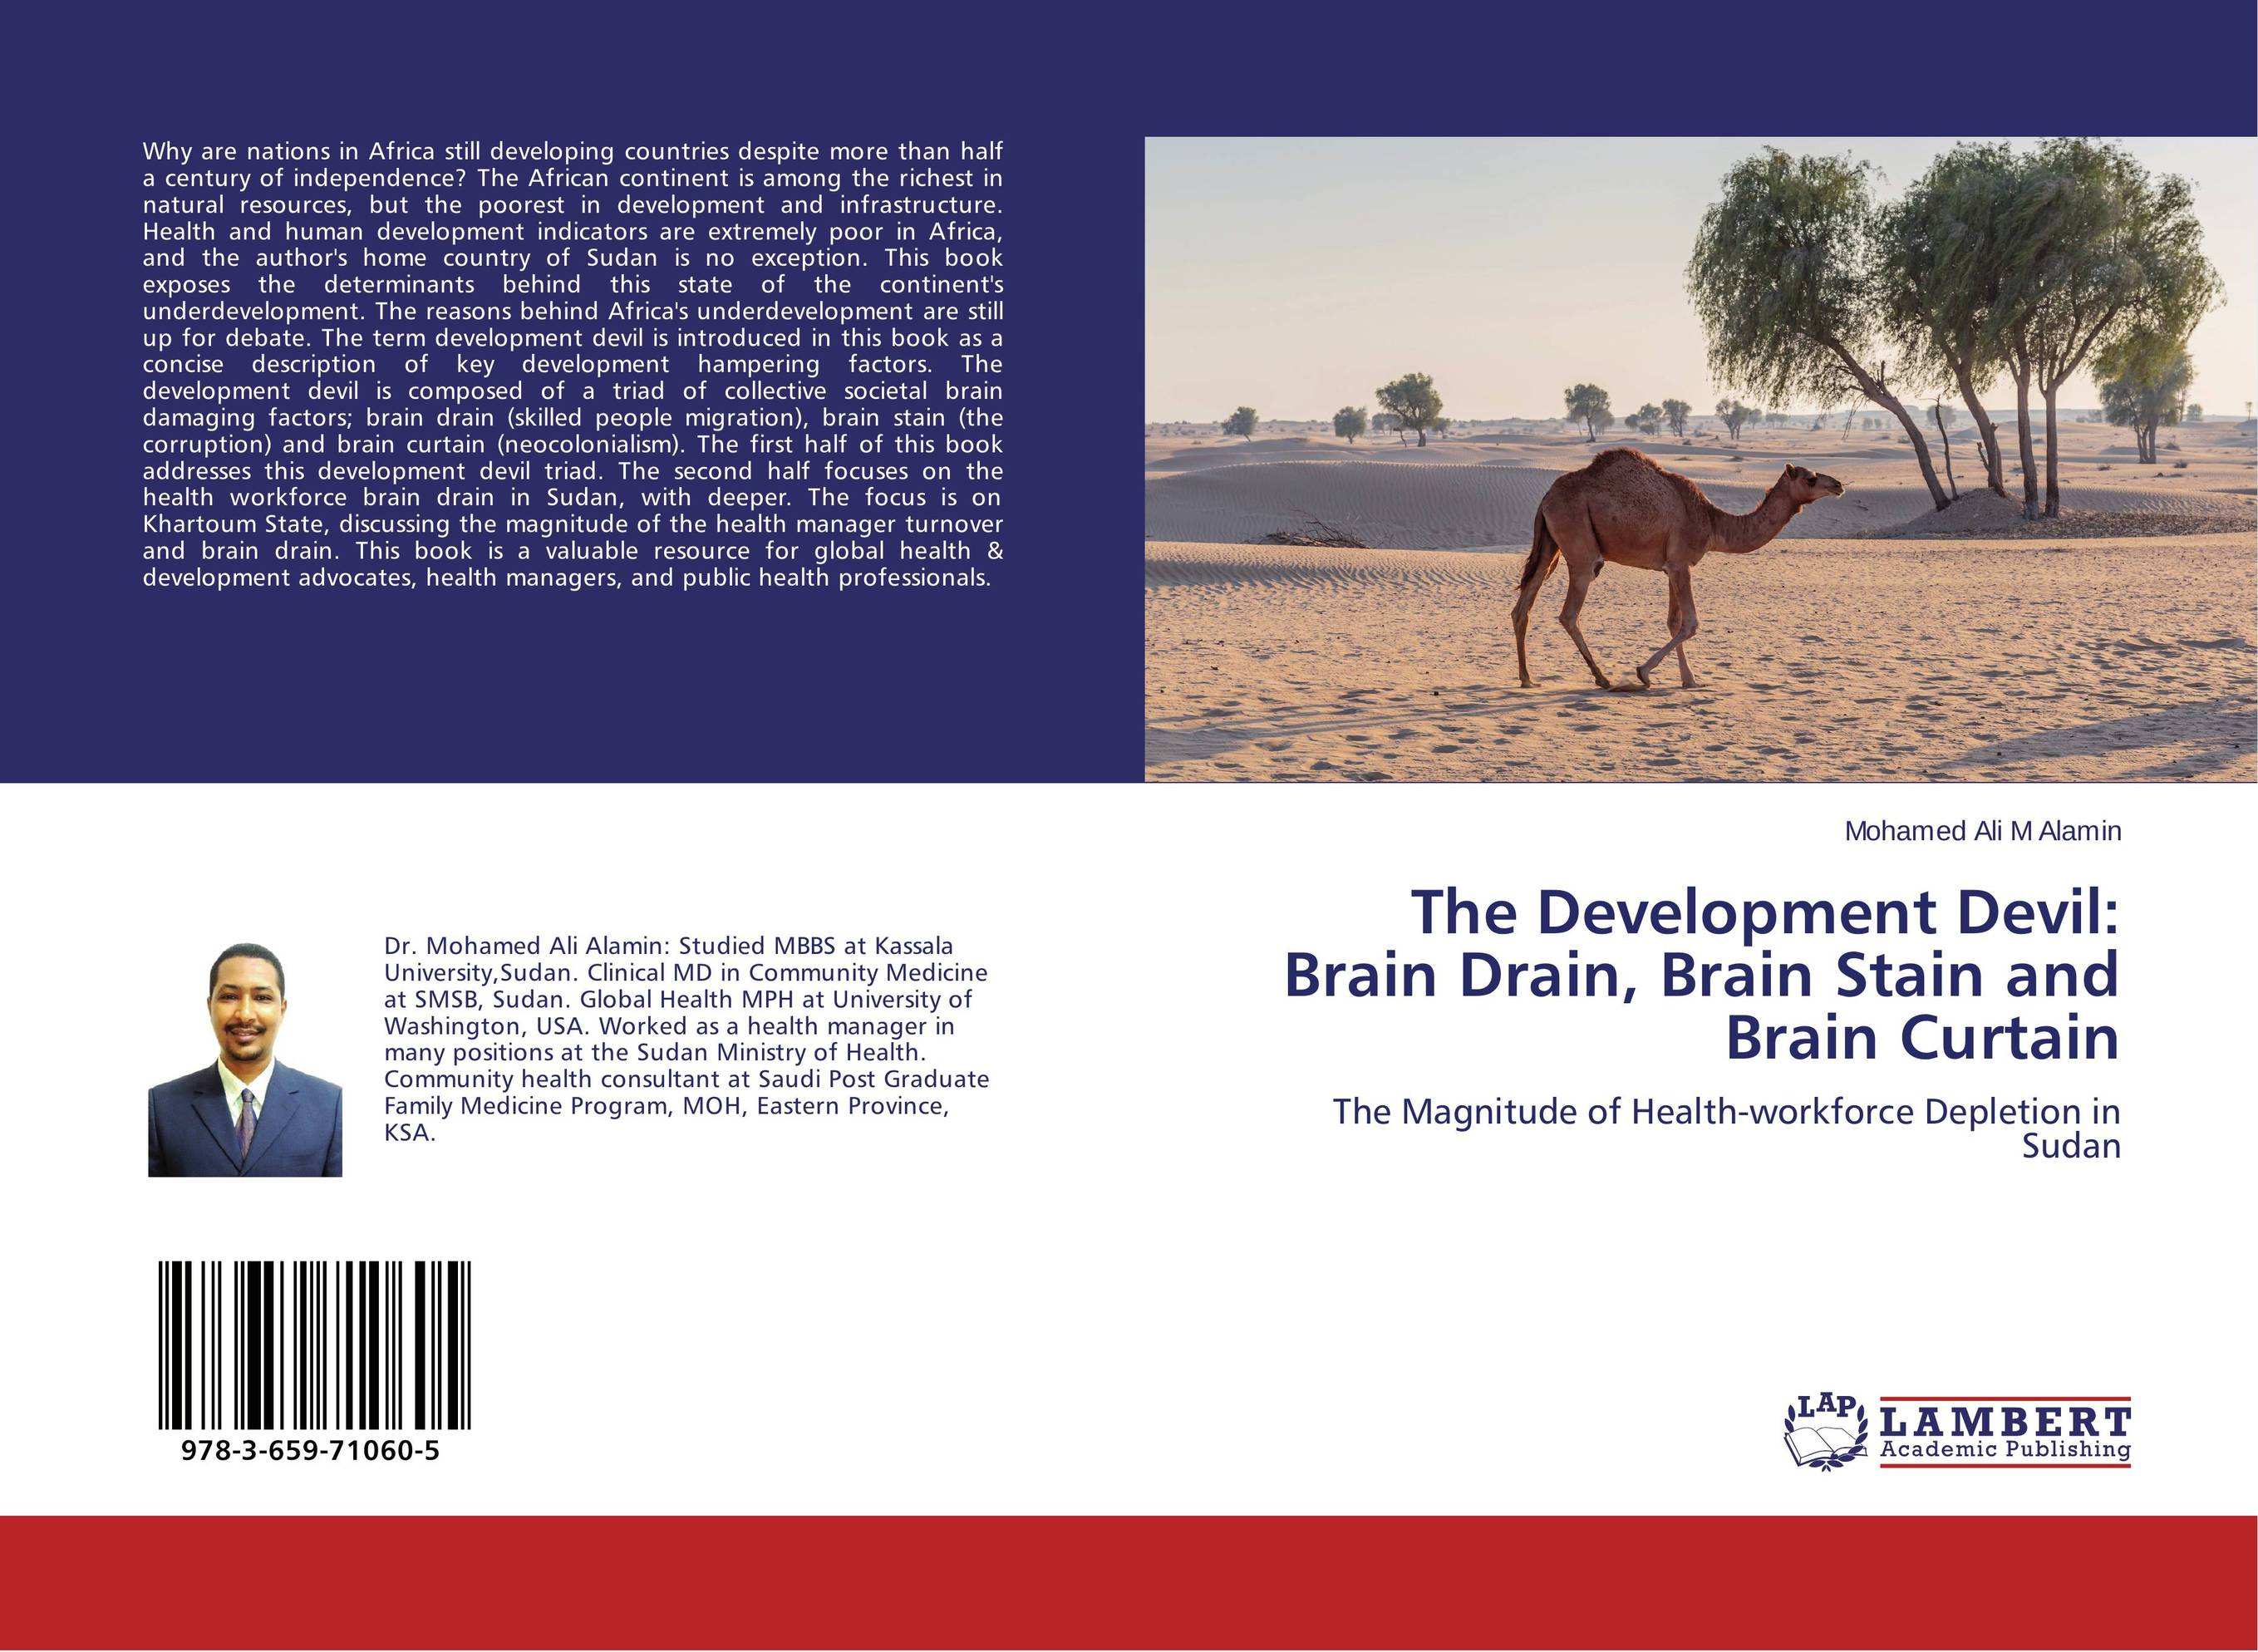 The Development Devil: Brain Drain, Brain Stain and Brain Curtain omega 3 fish oil supplement 1000mg 180 count triglyceride form premium pharmaceutical grade known as being one of the best health supplements for cardiovascular joint and brain health benefits easy to swallow softgel capsules natural lemon